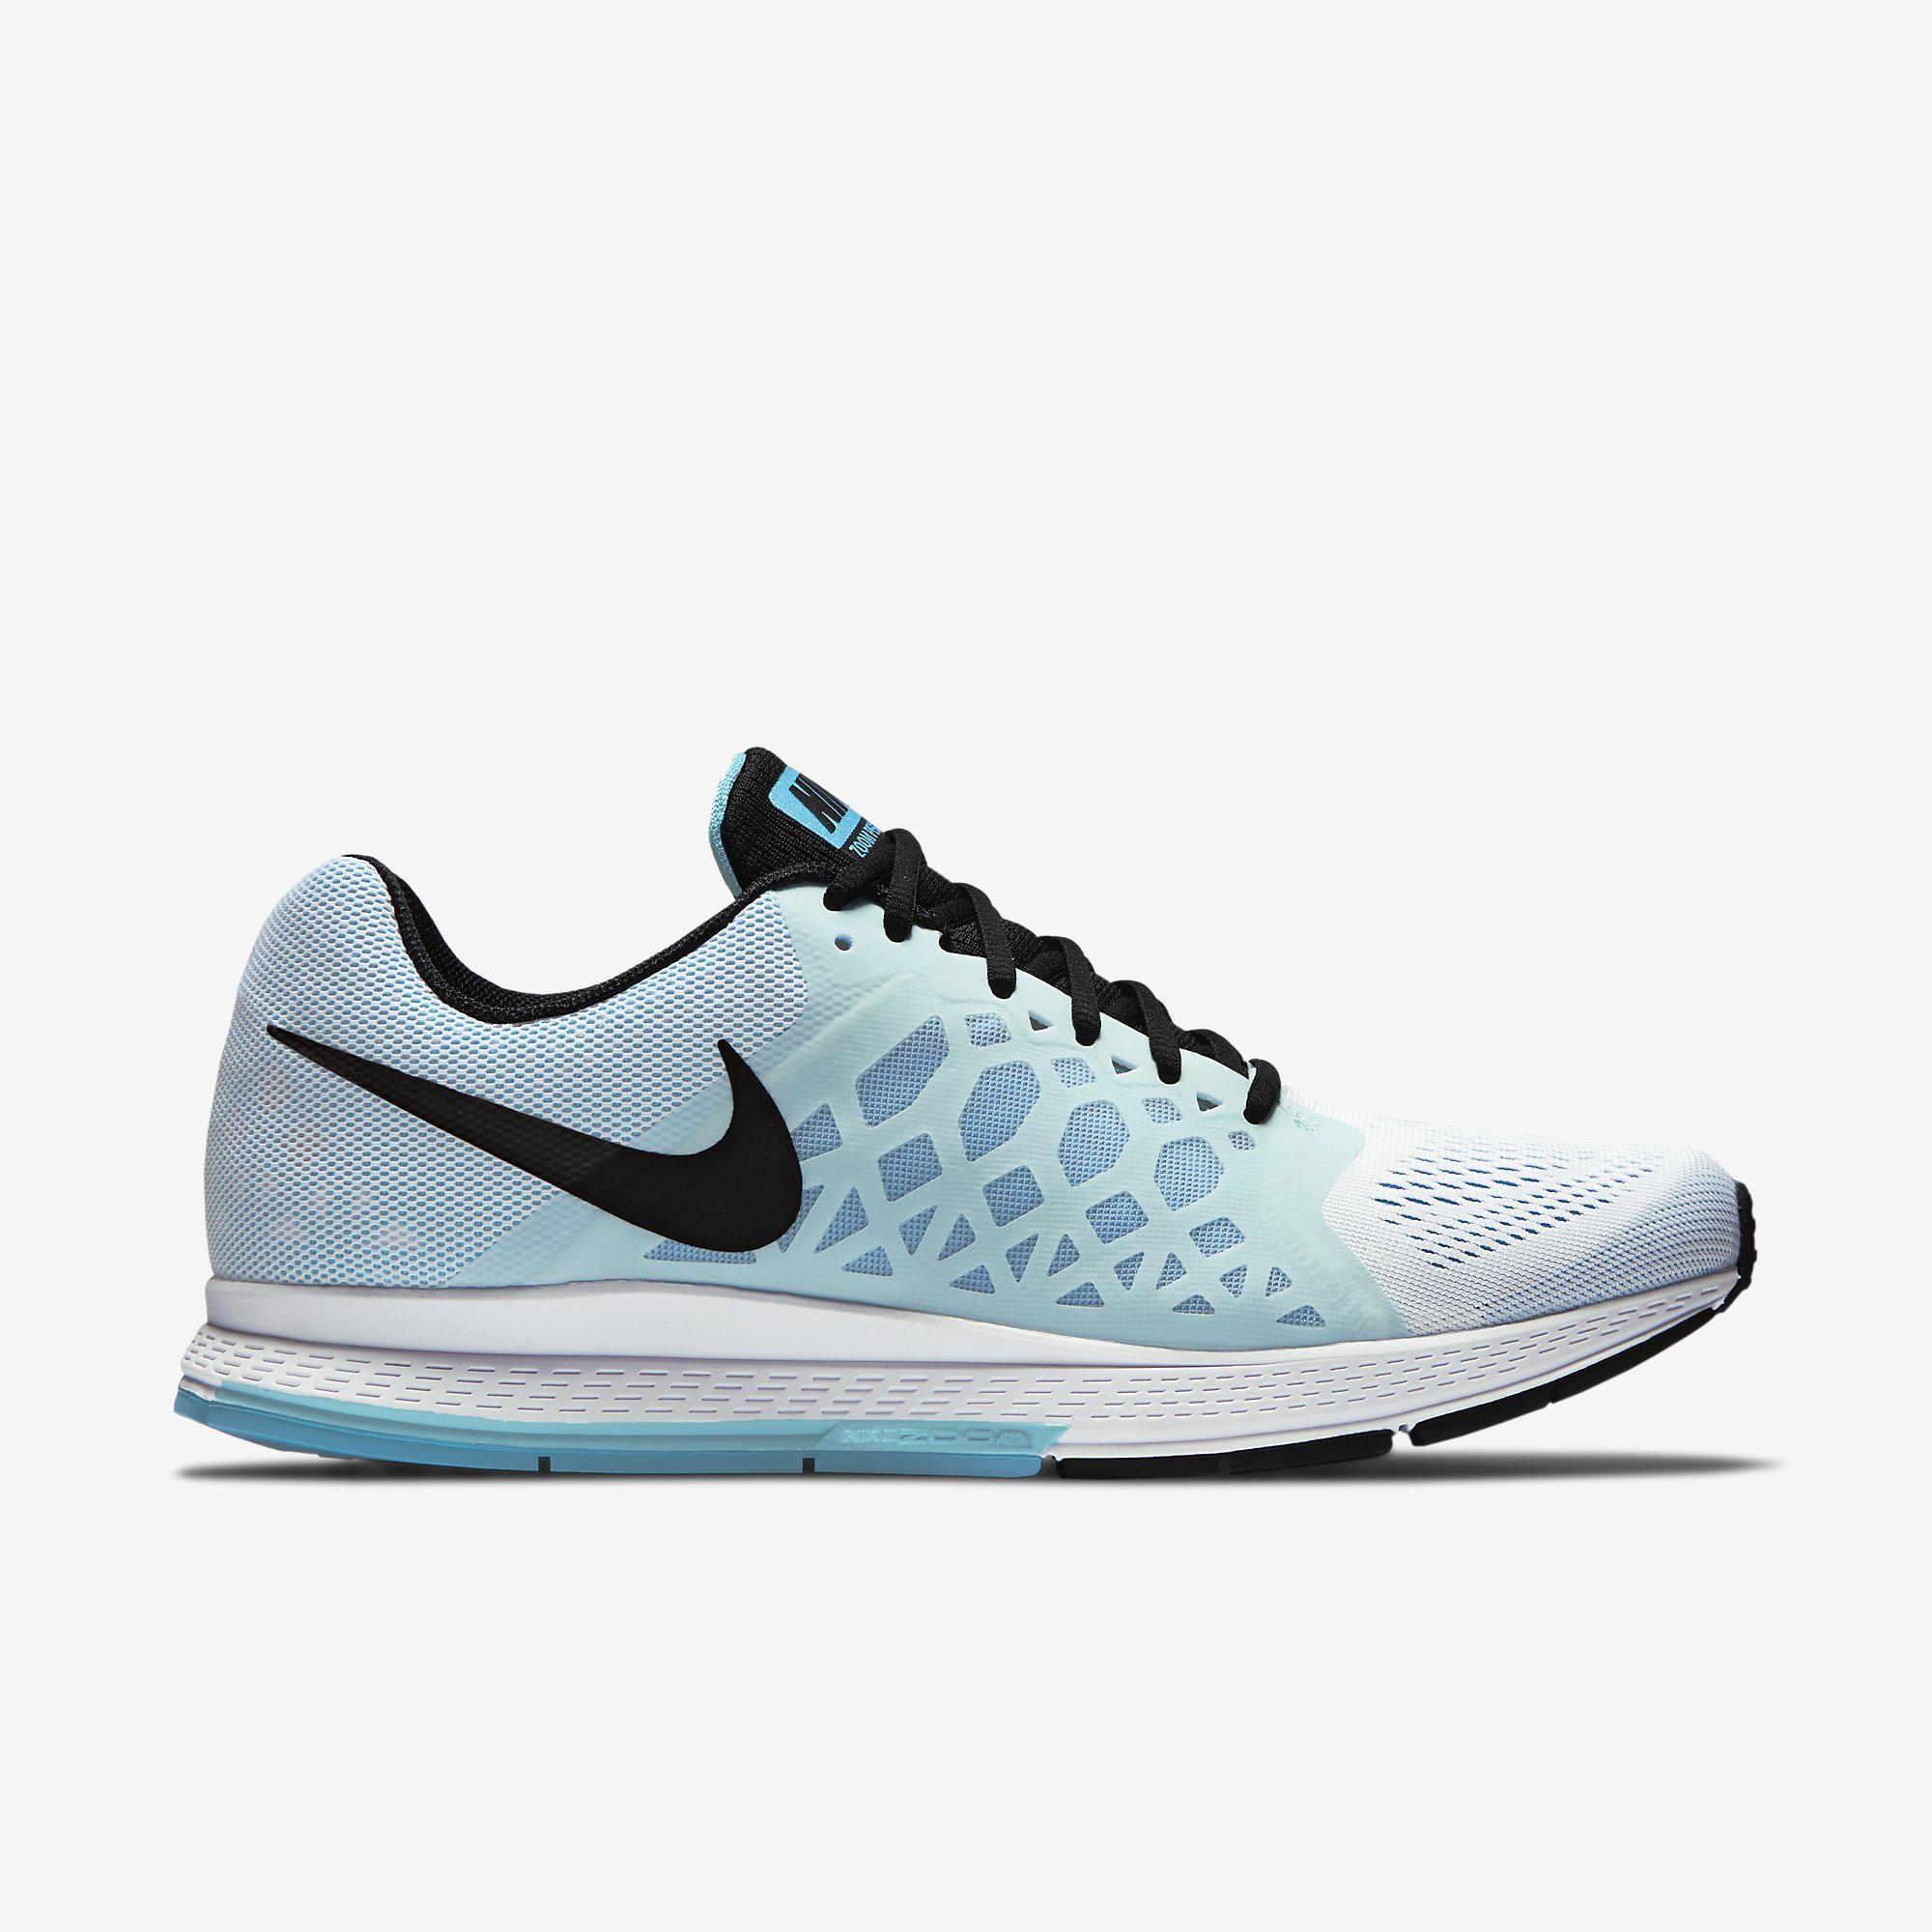 Nike Shoes Price In Thailand